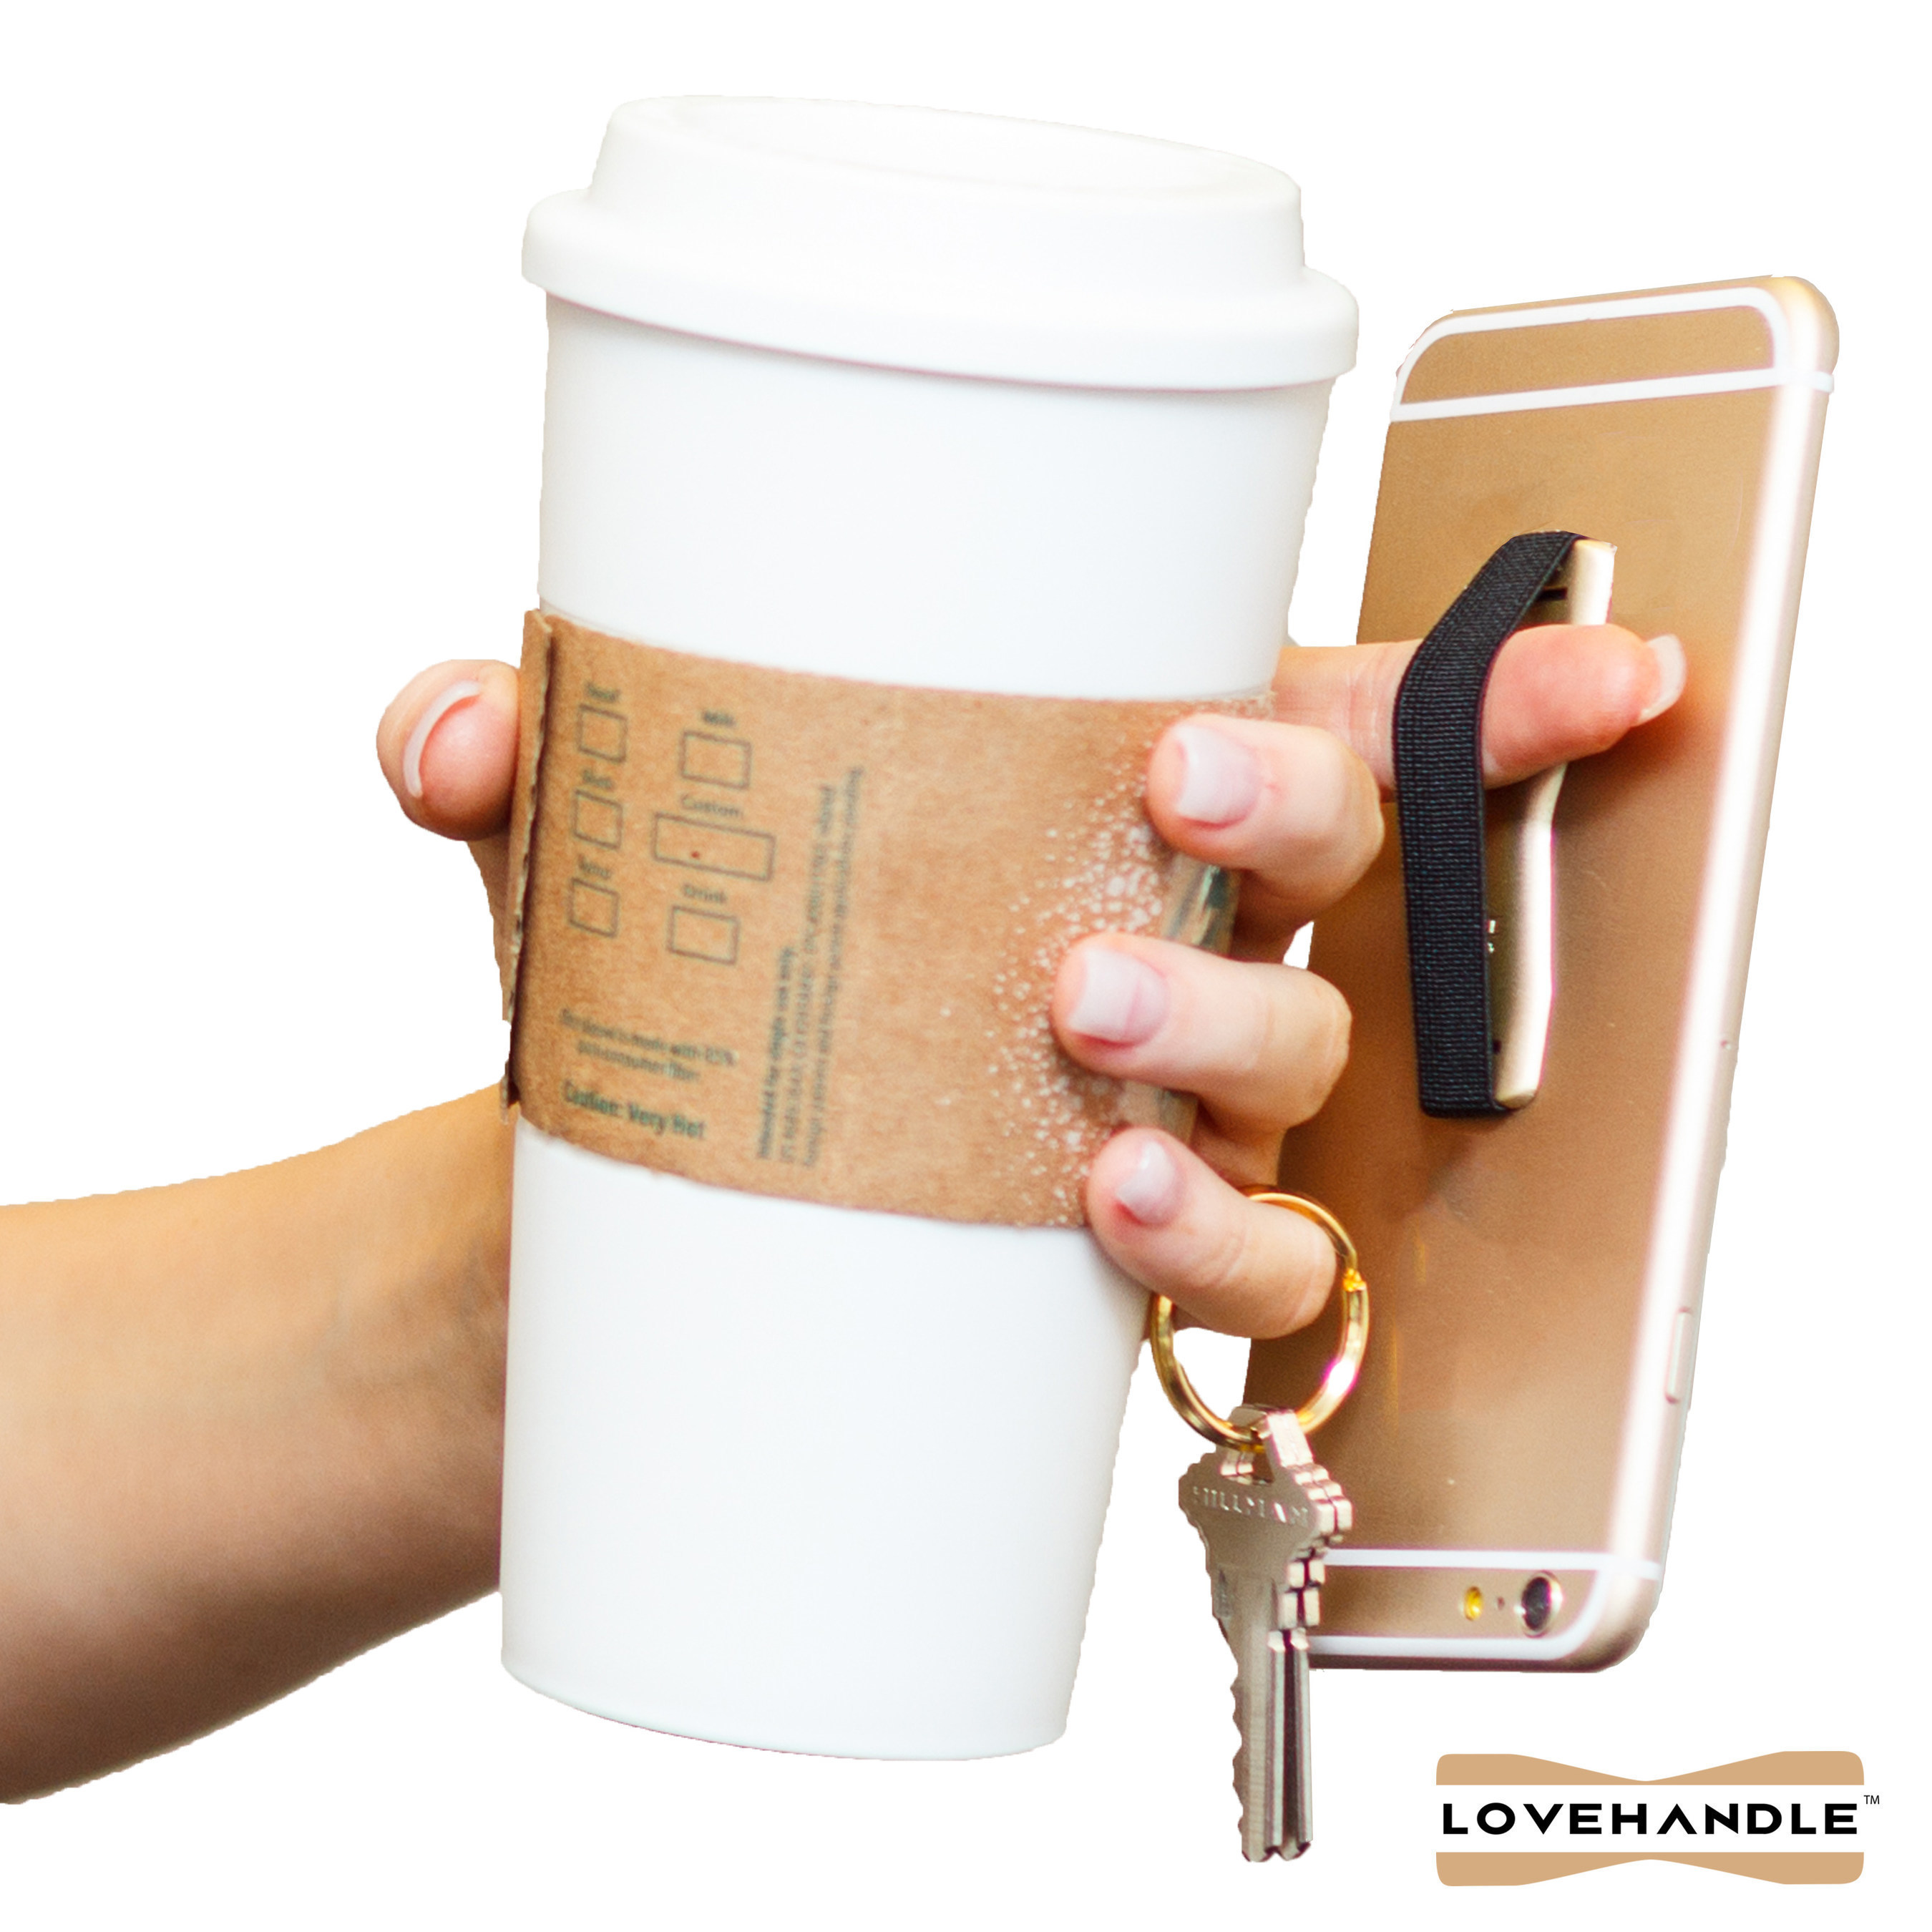 $400k LoveHandle™ Smartphone Grip Giveaway for CES 2016 Attendees Sponsored by www.LoveHandle.com